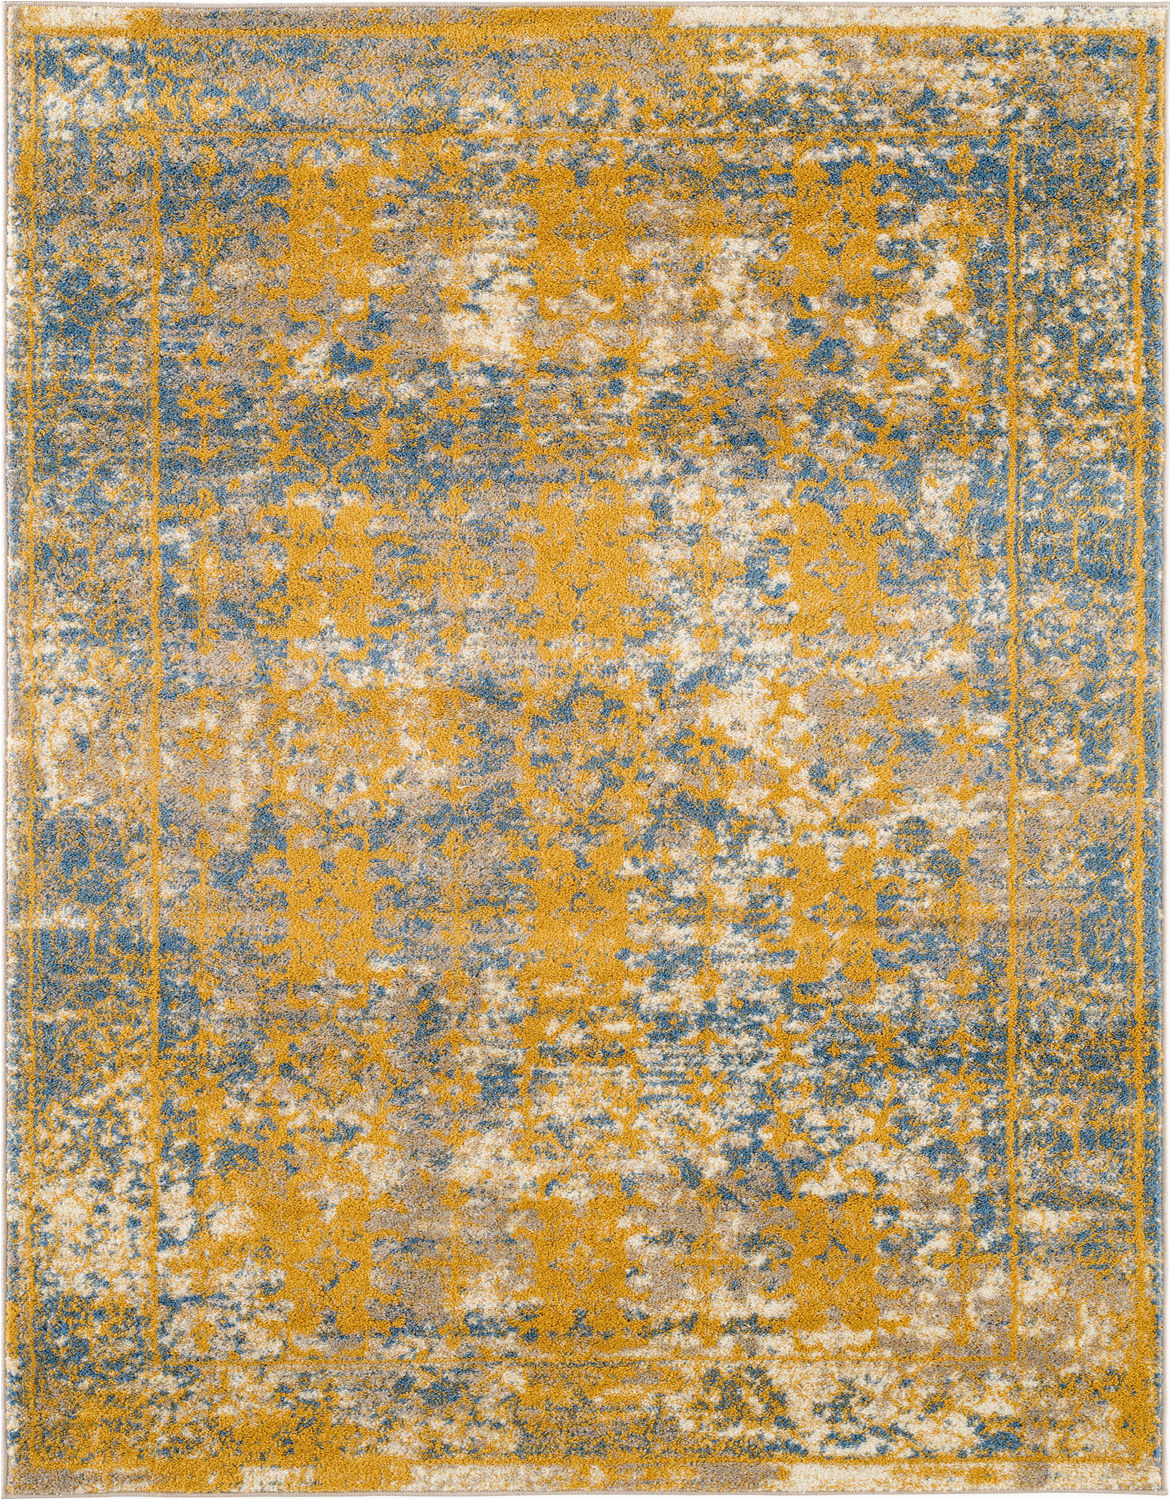 Rugs Yellow and Blue Modern Loom Sanya Sna 4 Yellow Blue Rug From the assorted